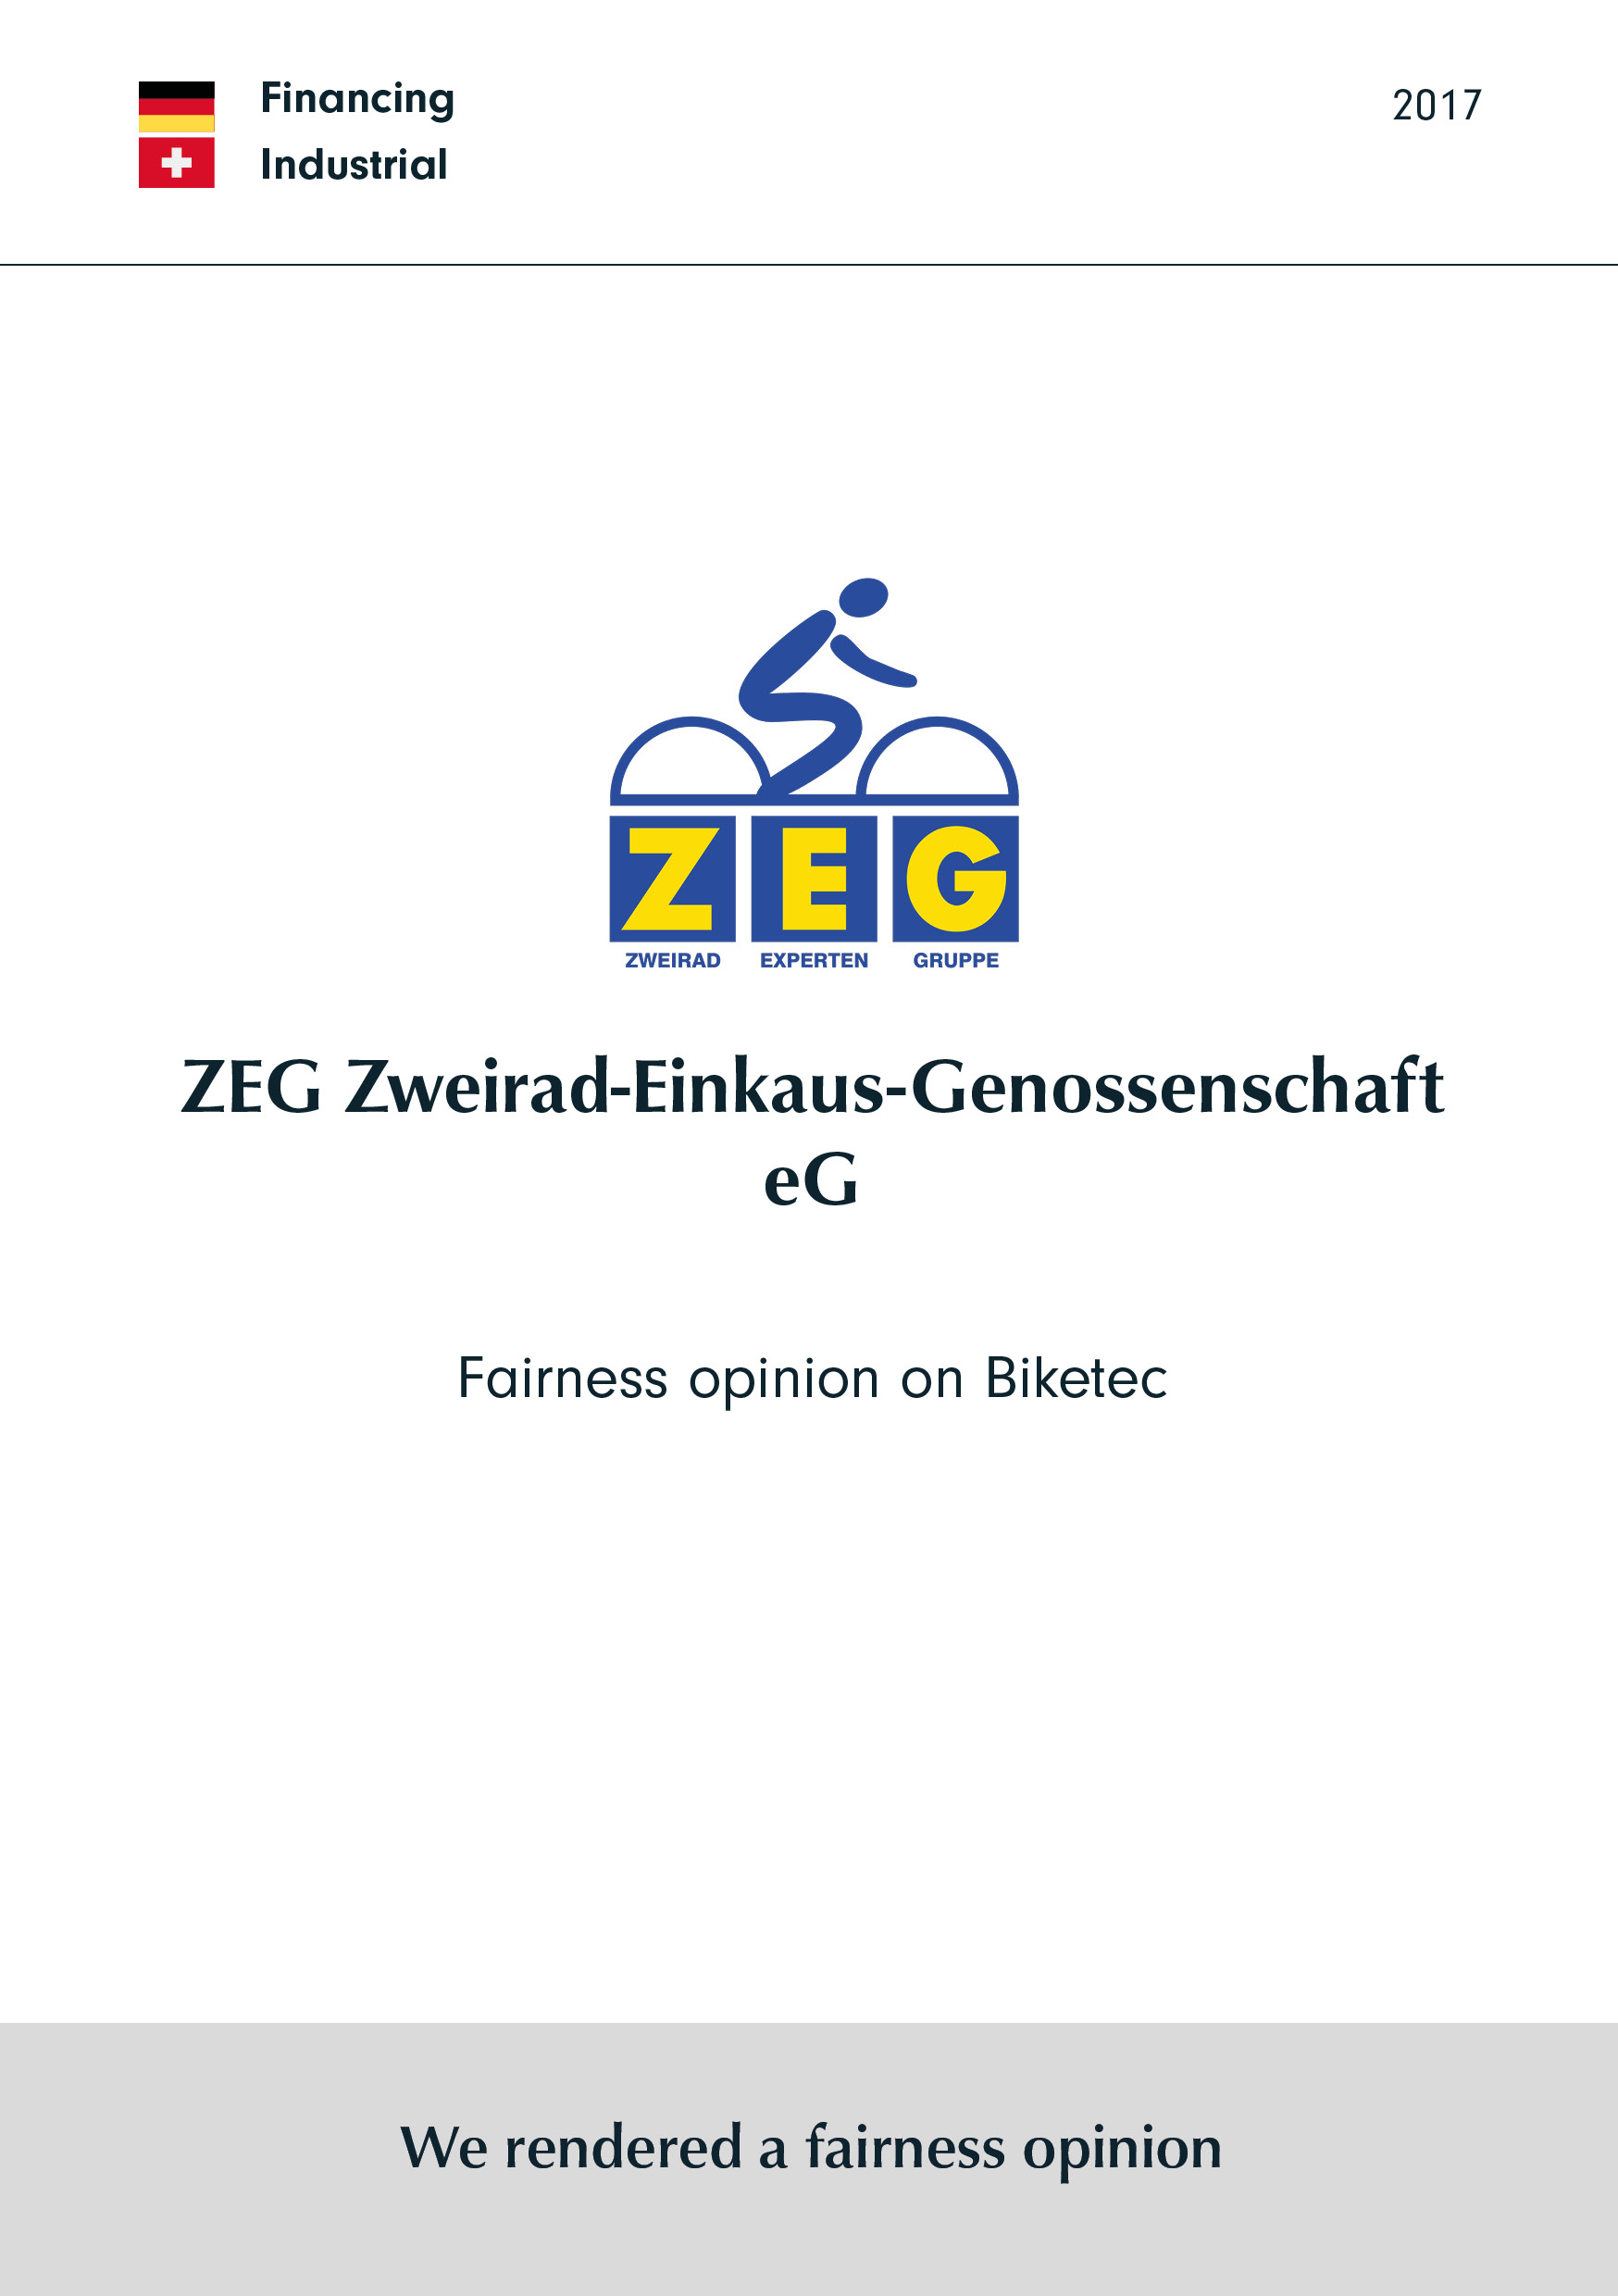 ZEG | Fairness opinion on Biketec